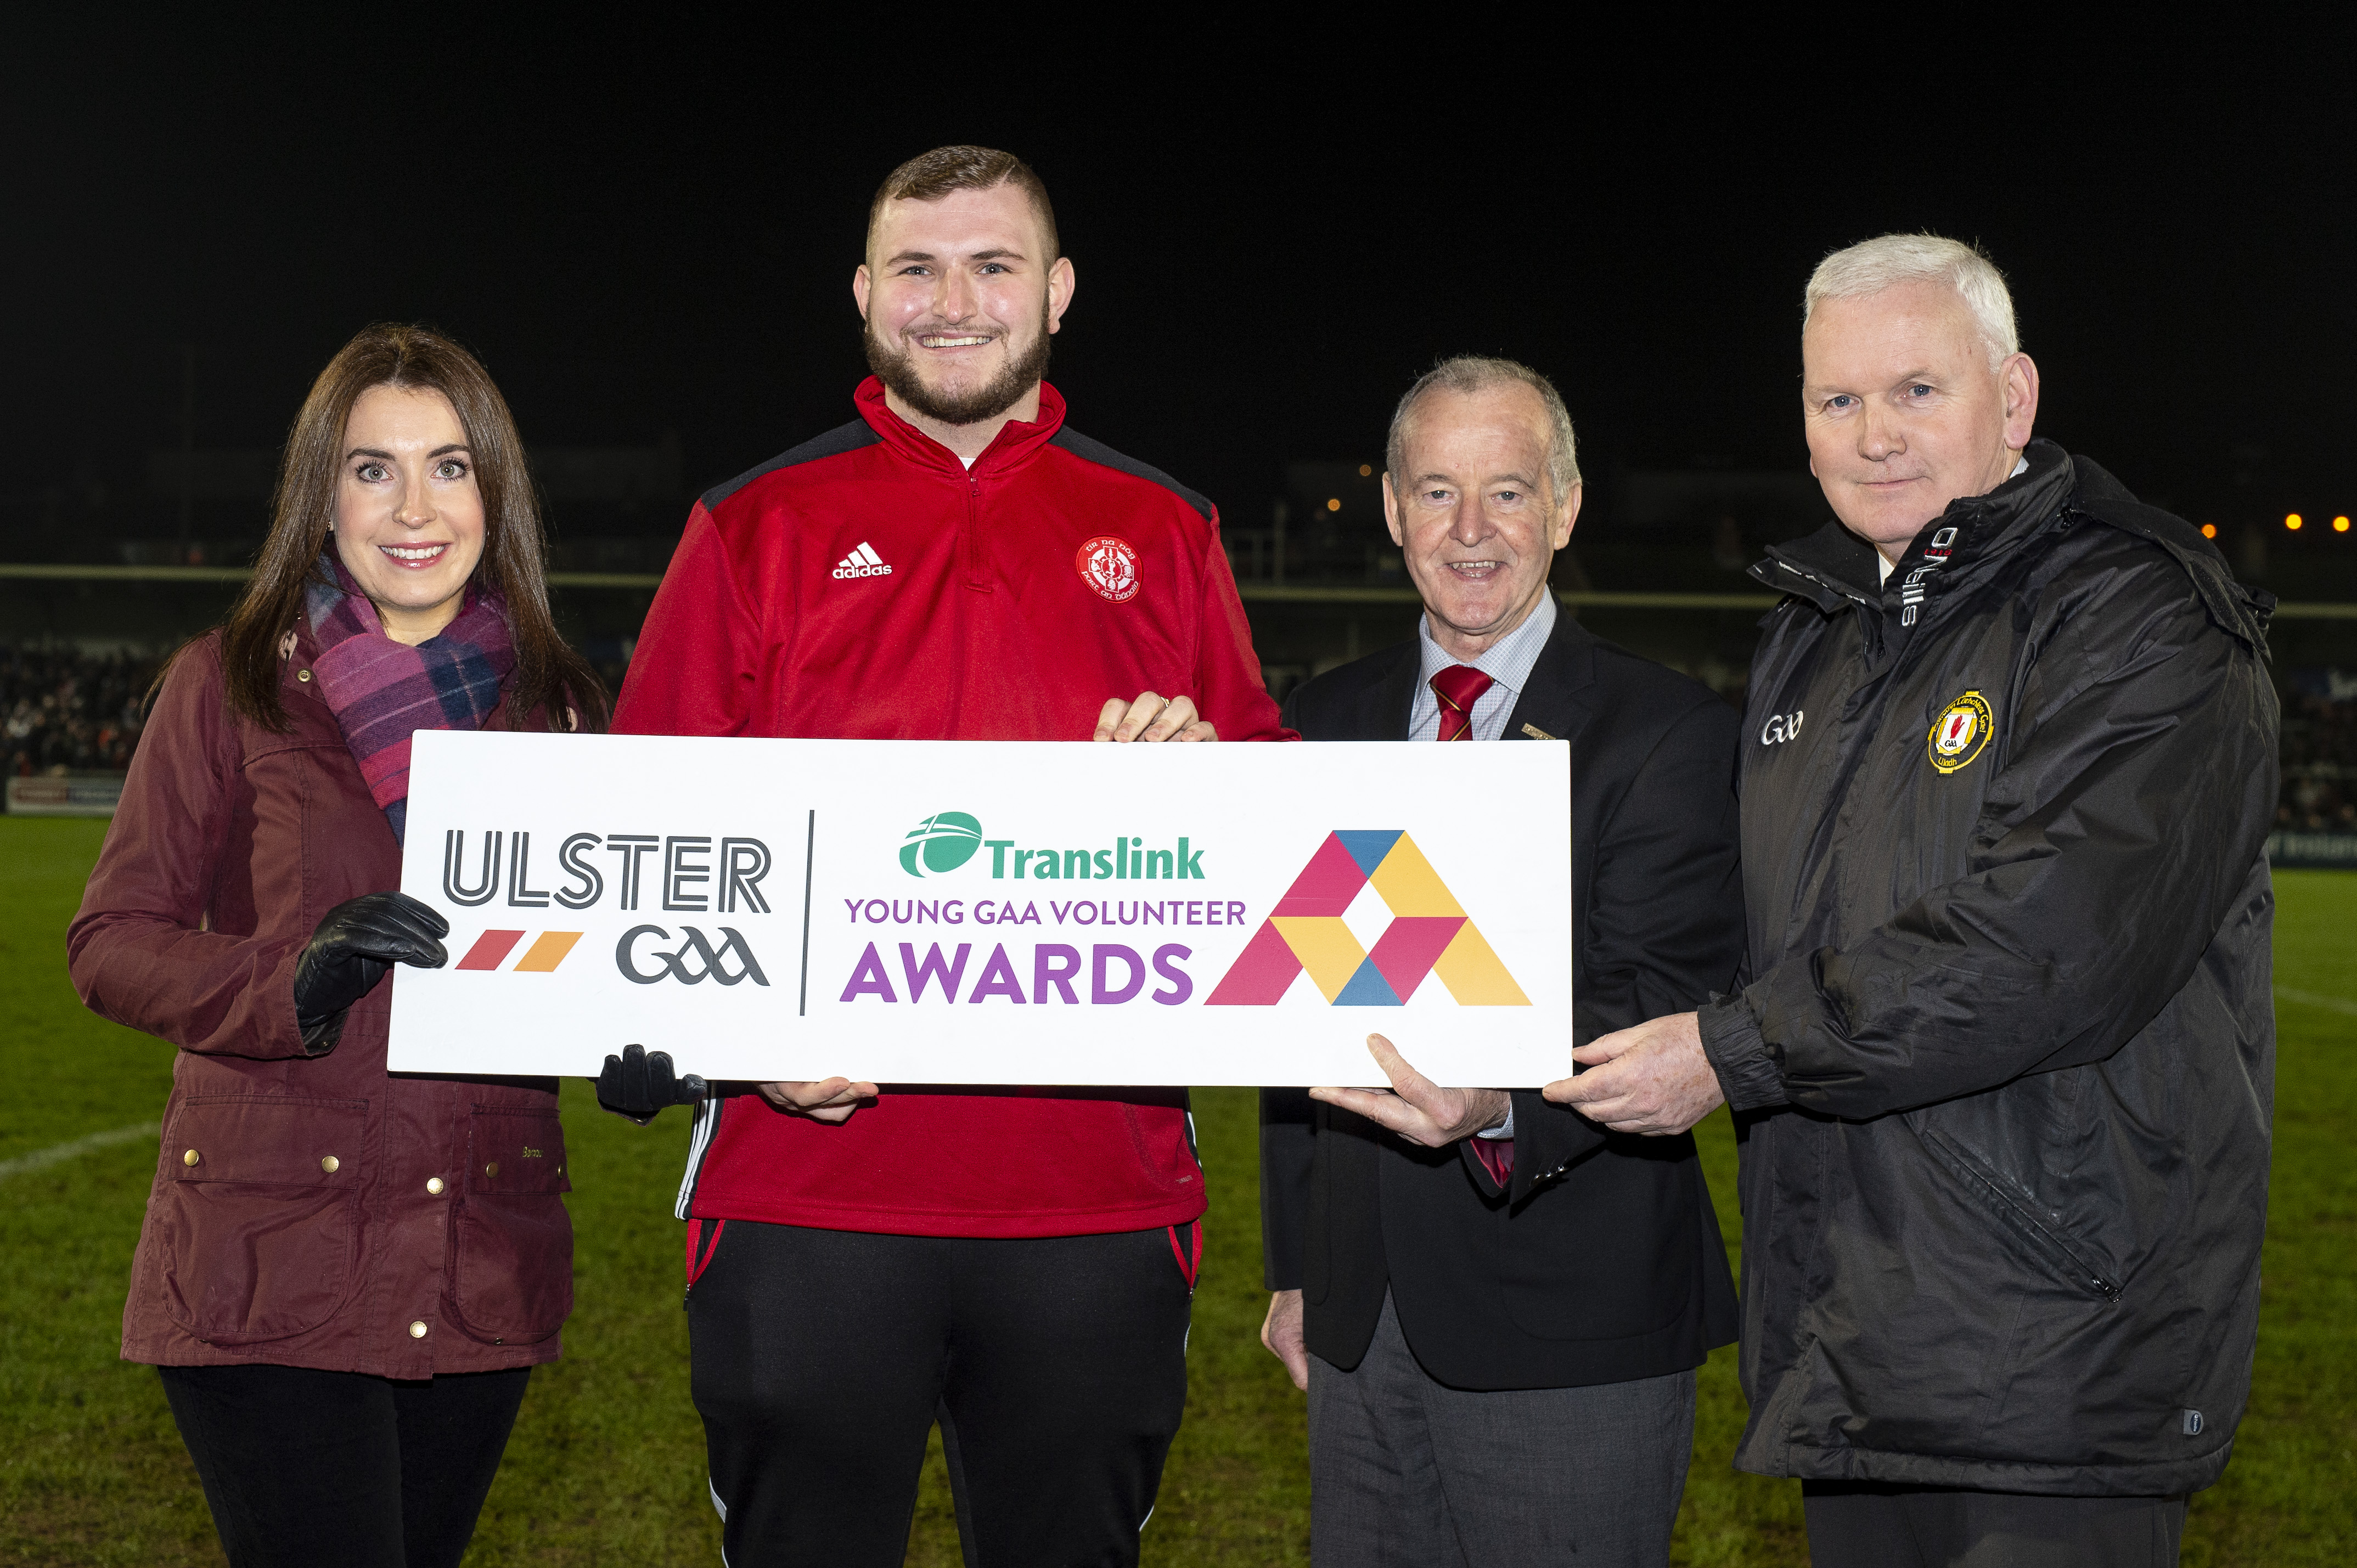 Budding reporter awarded Translink Young GAA Volunteer of the Year